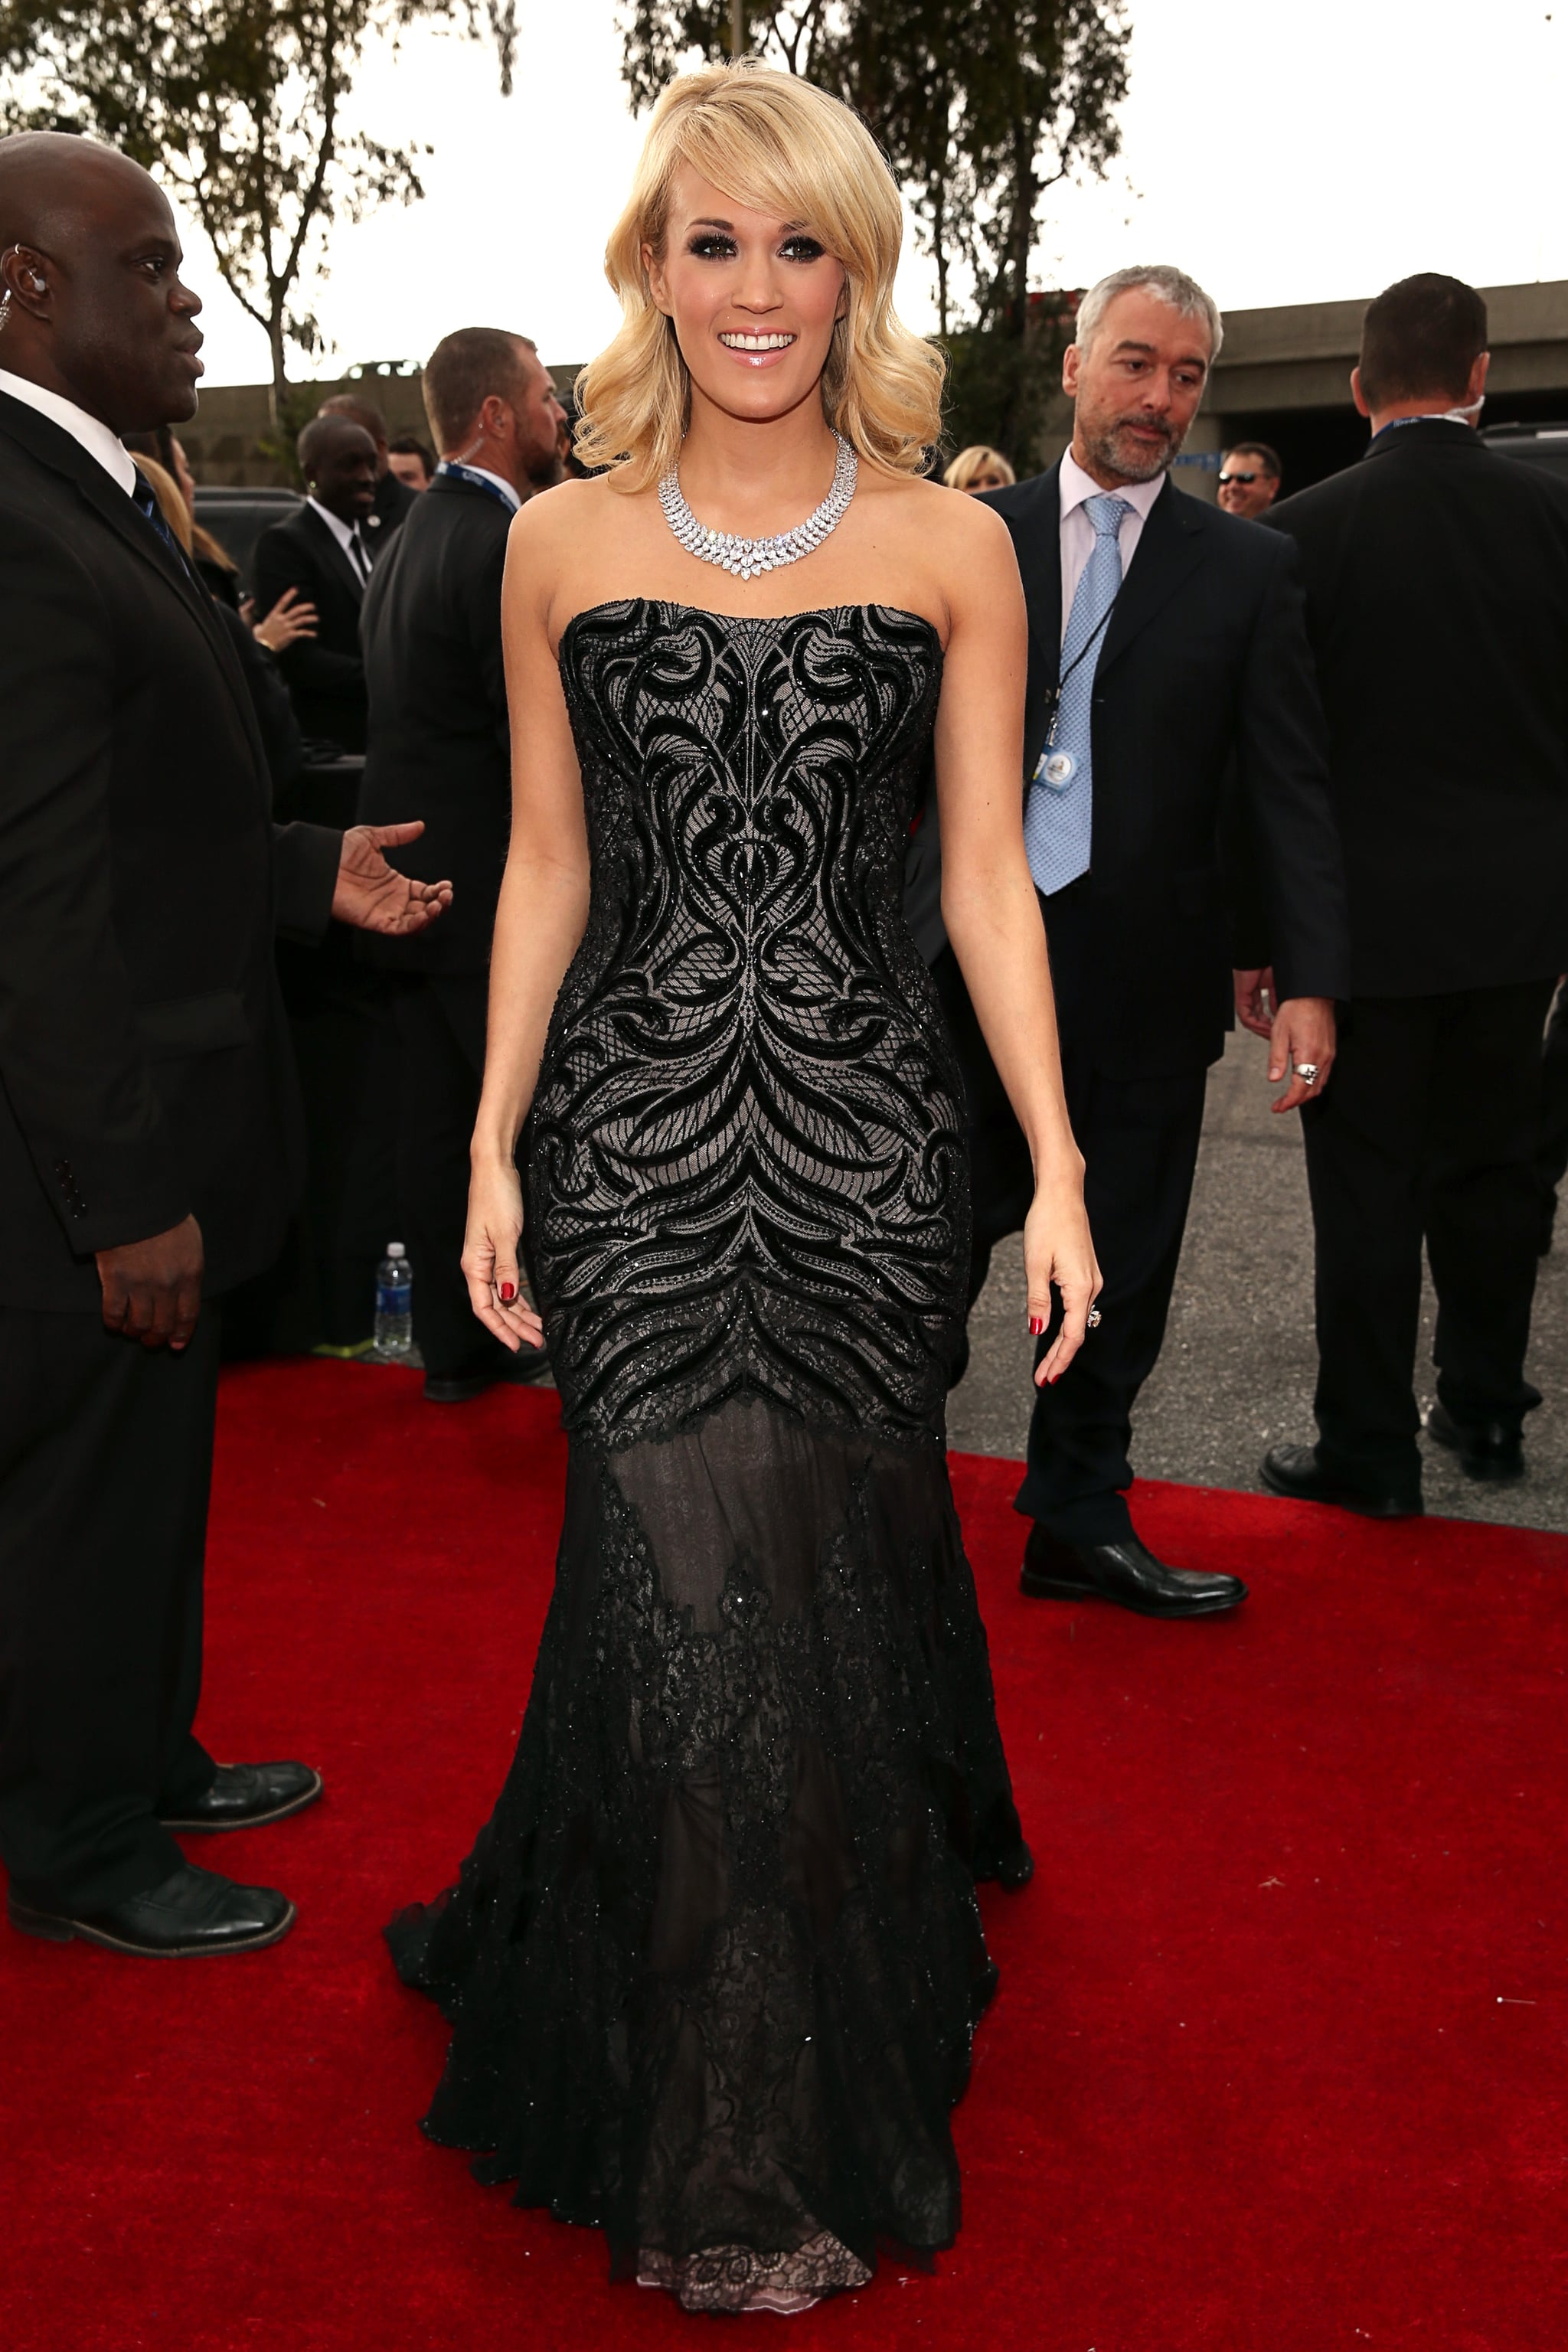 Carrie Underwood wore a Roberto Cavalli gown for the Grammys red carpet.